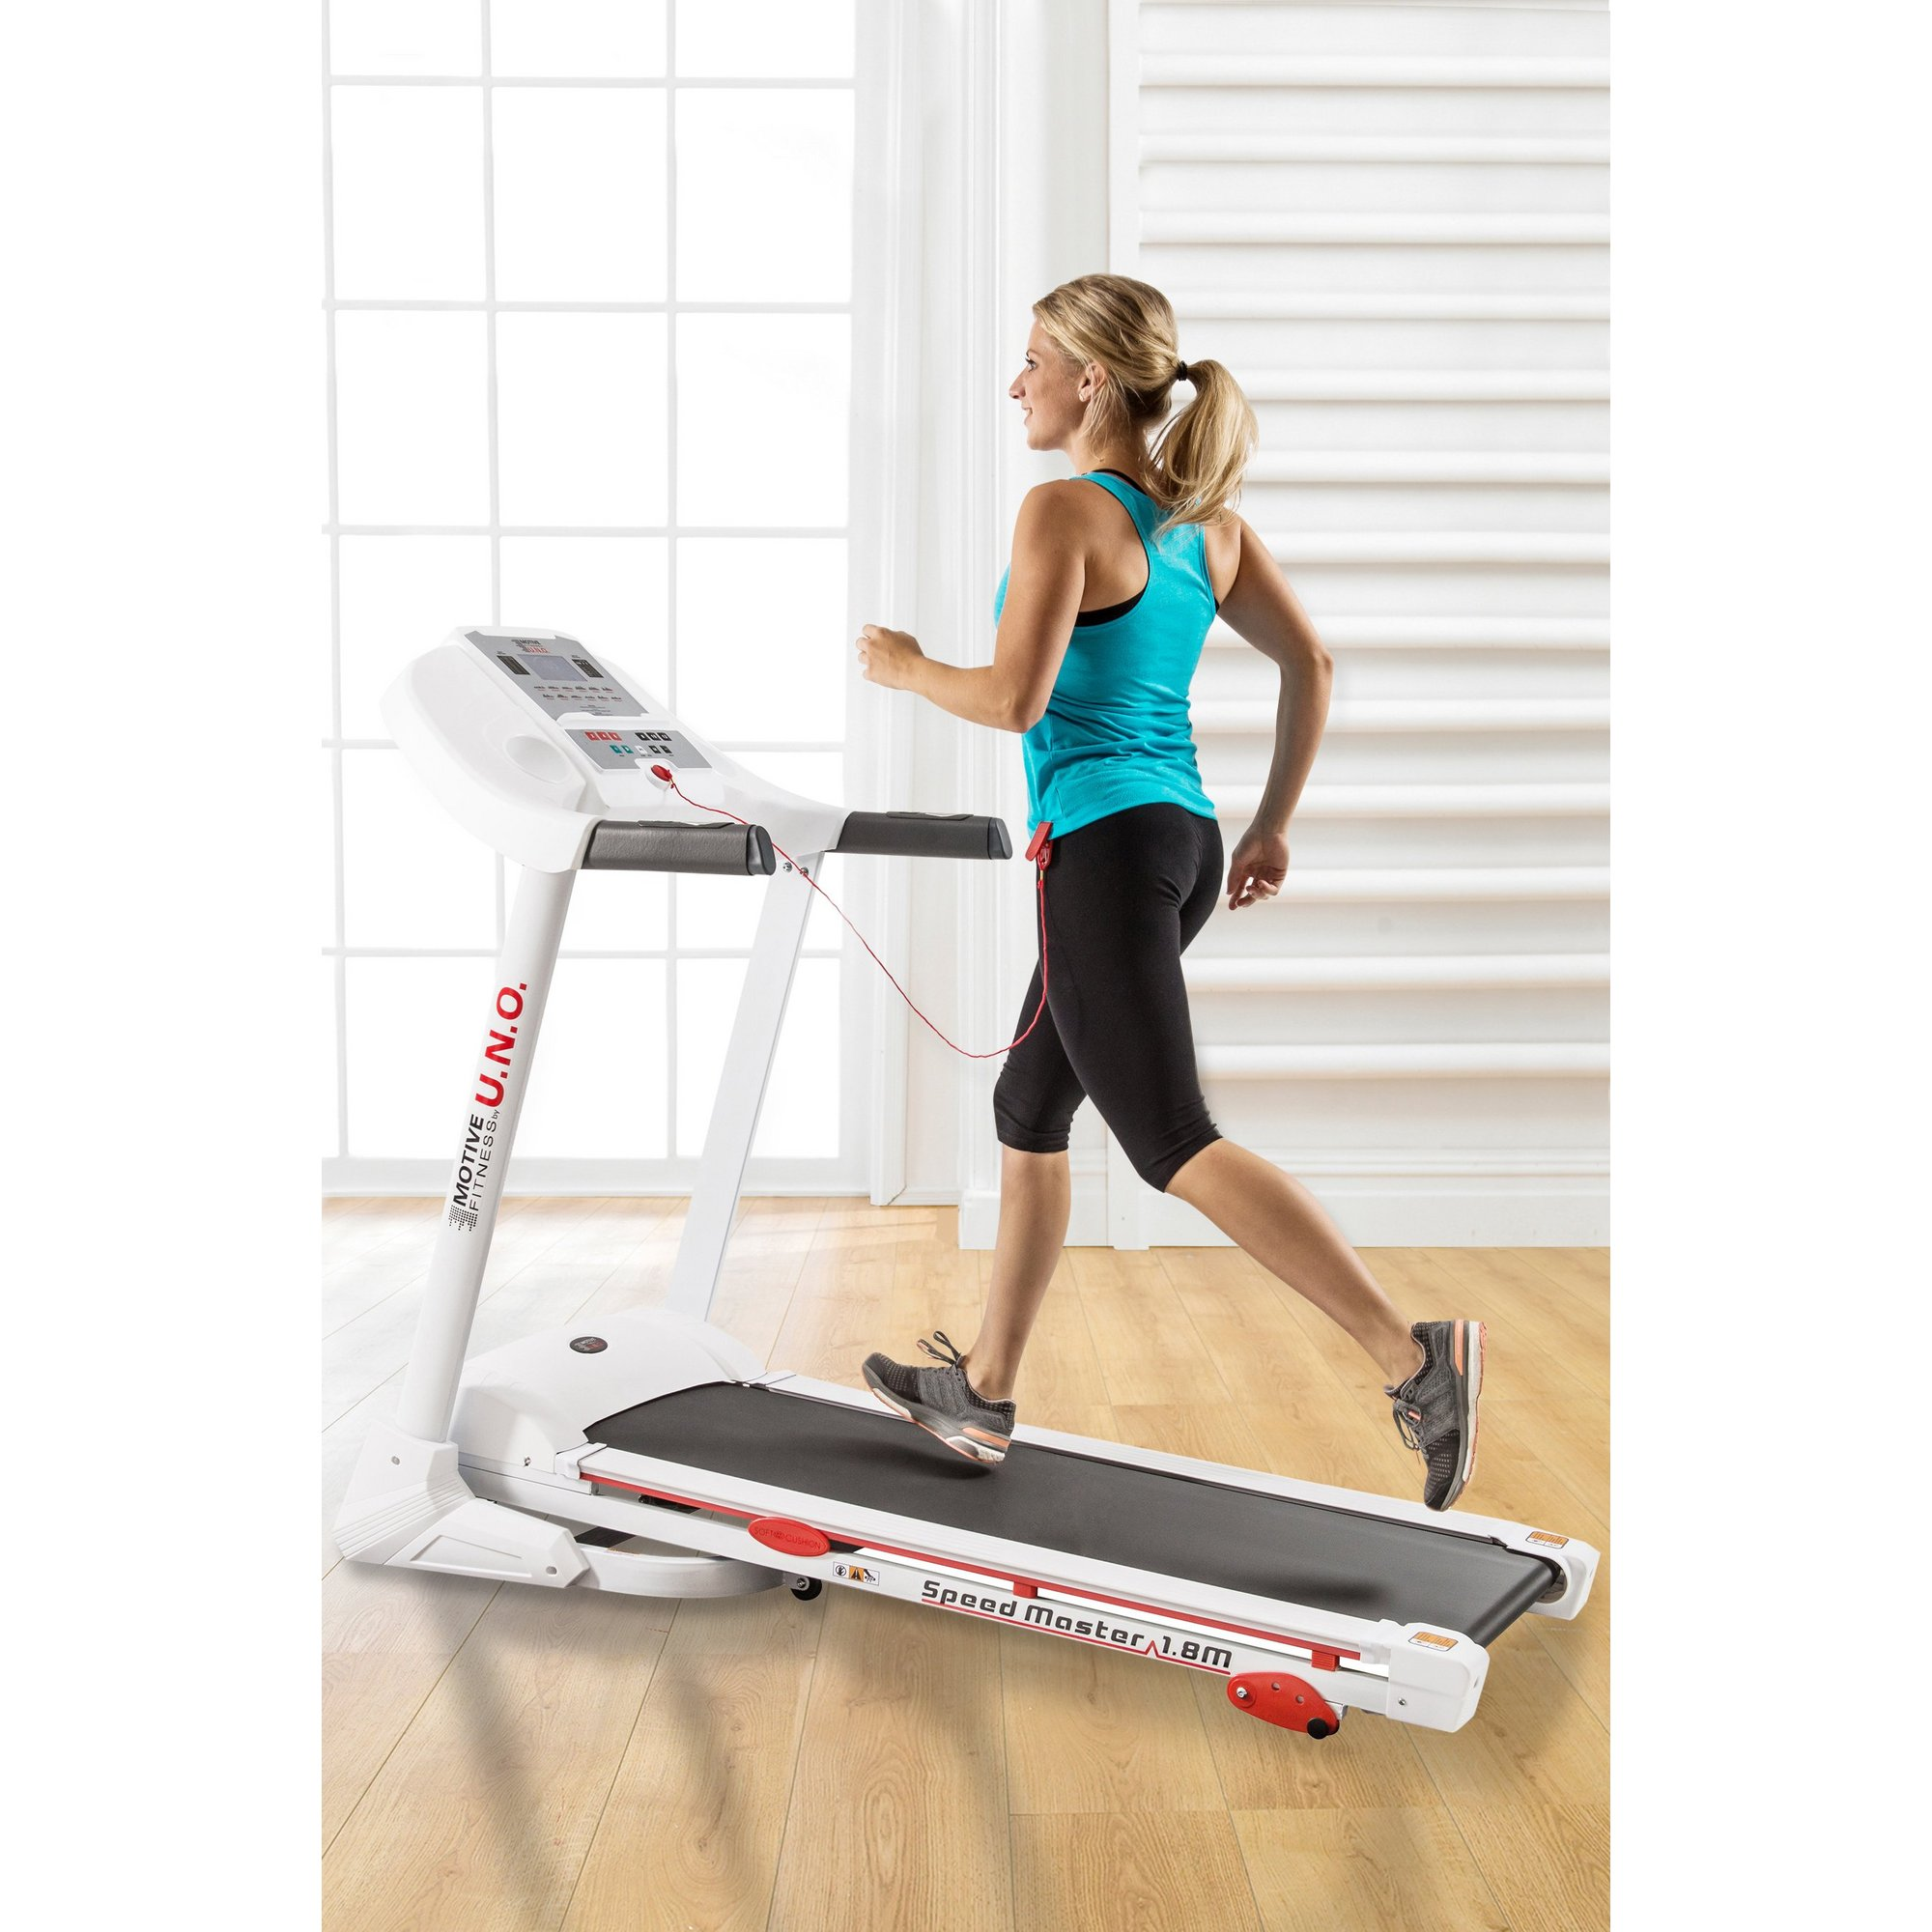 Image of Motive Fitness By Uno Speed Master 1.8M Treadmill